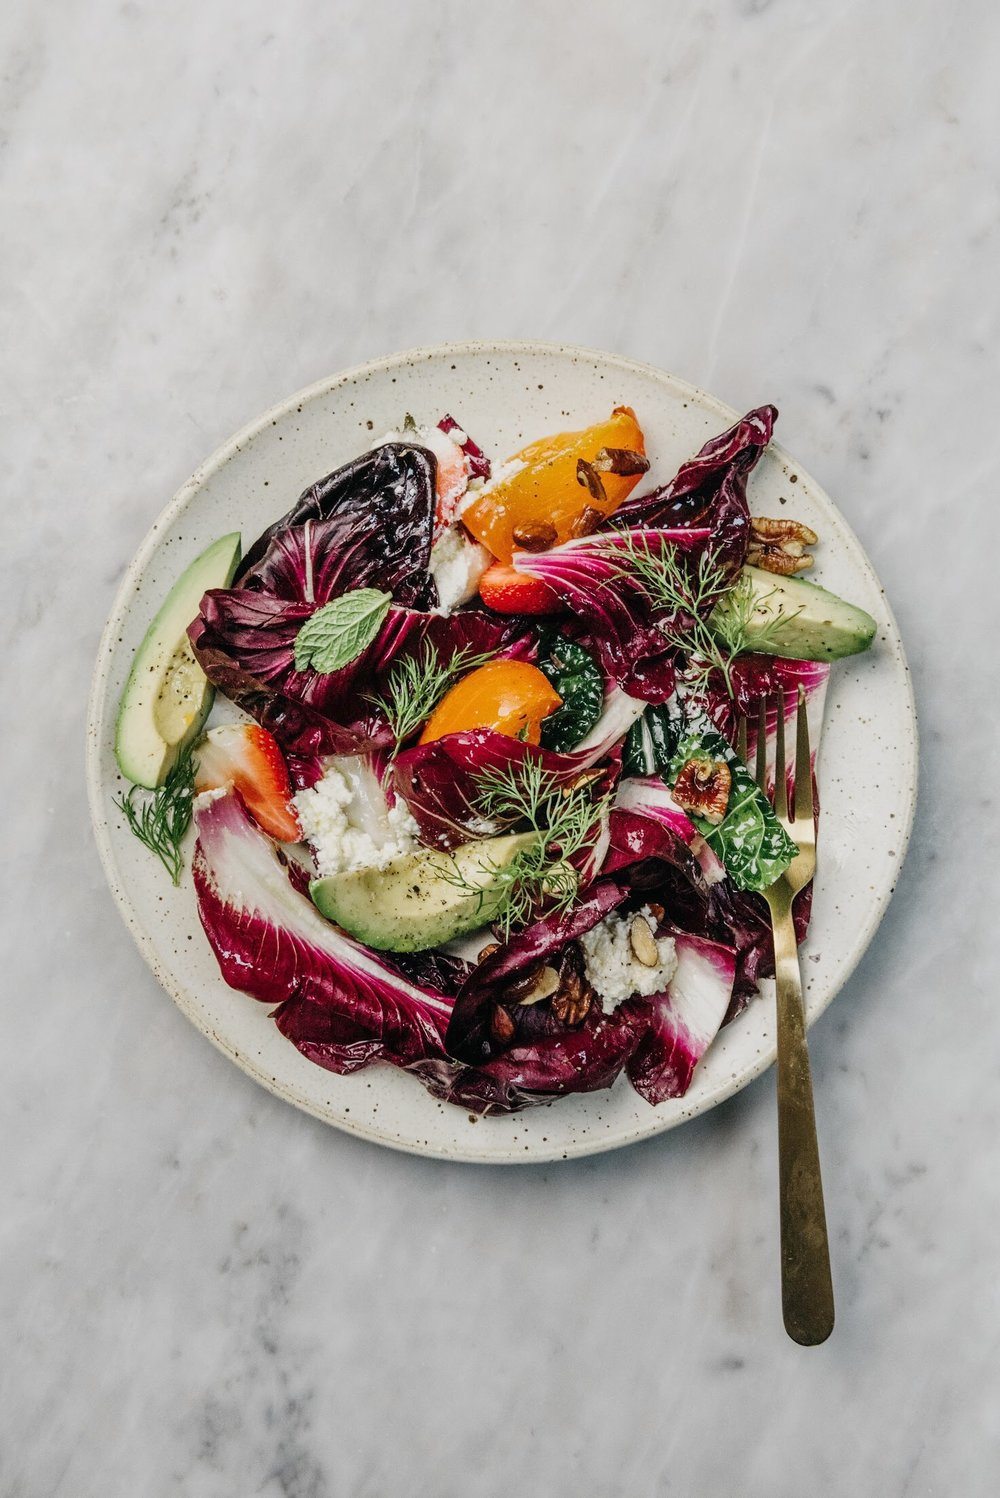 WINTER GREENS AND PERSIMMON SALAD WITH RICOTTA AND AVOCADO by Sarah Copeland #healthyeating #healthyrecipes #cleaneating #persimmon #avocado #sarahcopeland #edibleliving #raddichio #foodstyling #foodphotography #harrisonlubin